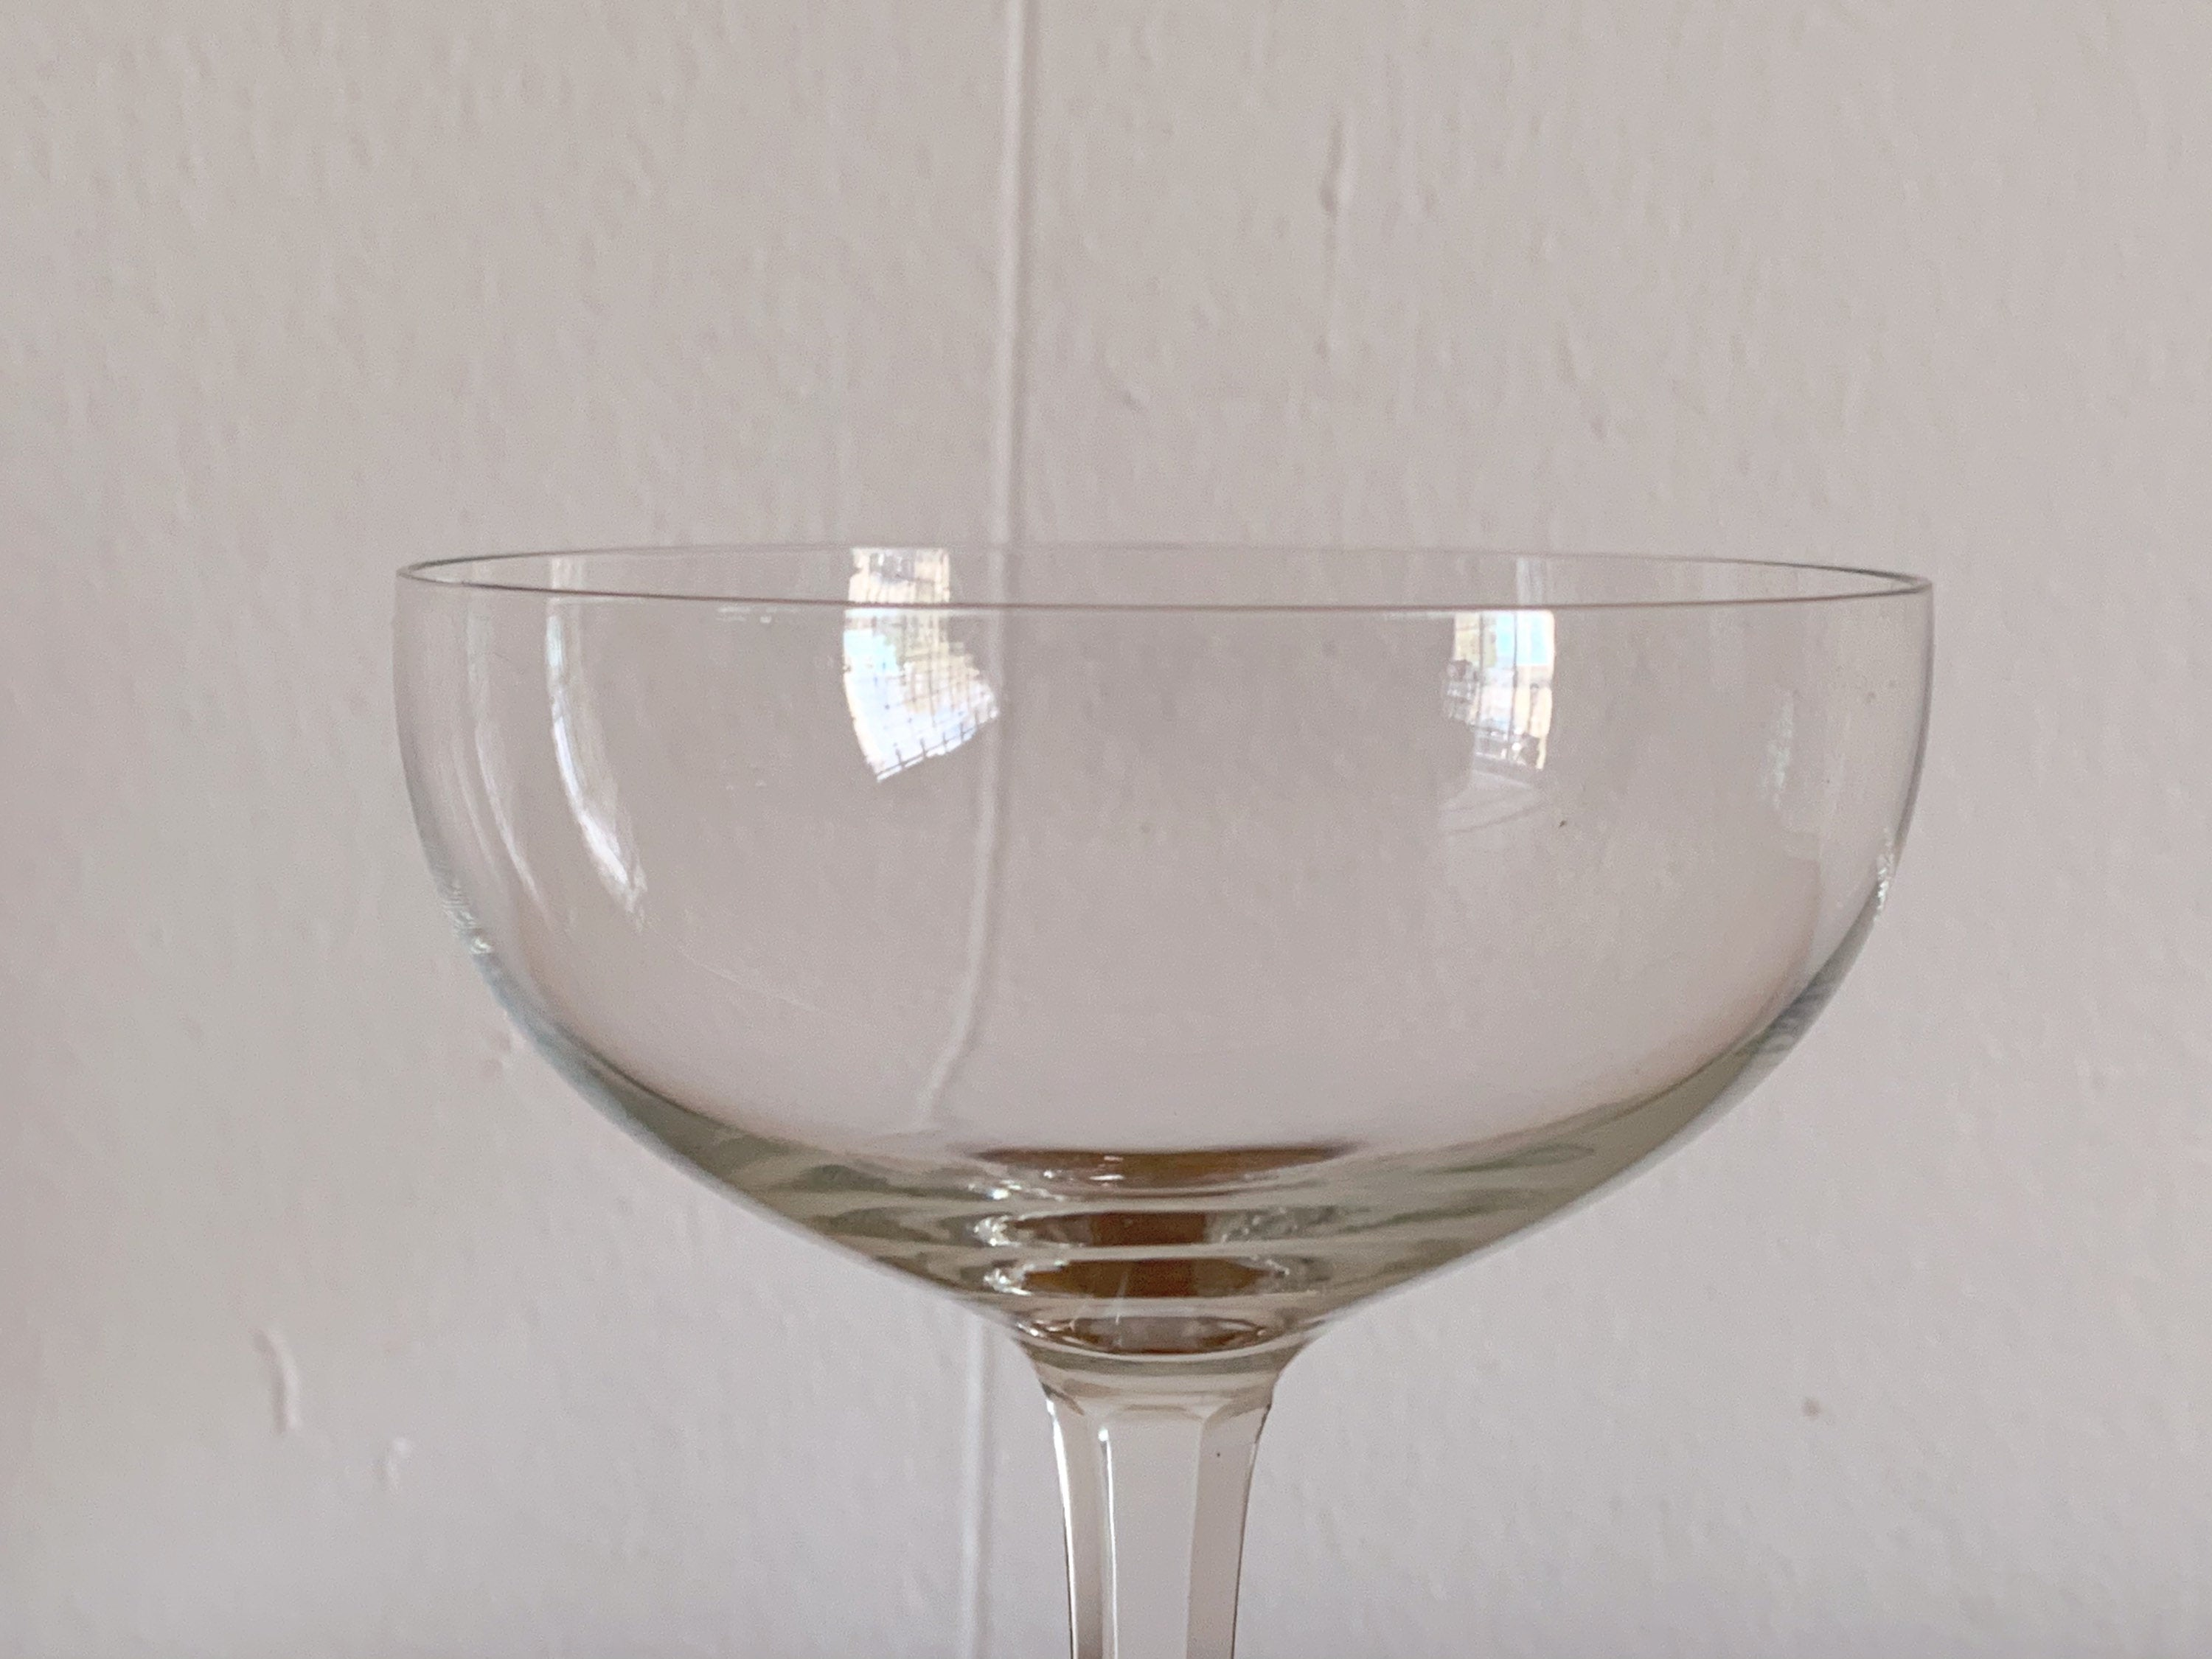 Vintage Clear Crystal Champagne Coupe Glasses | Craft Cocktail Glasses Barware in Set of 2, 4, 6